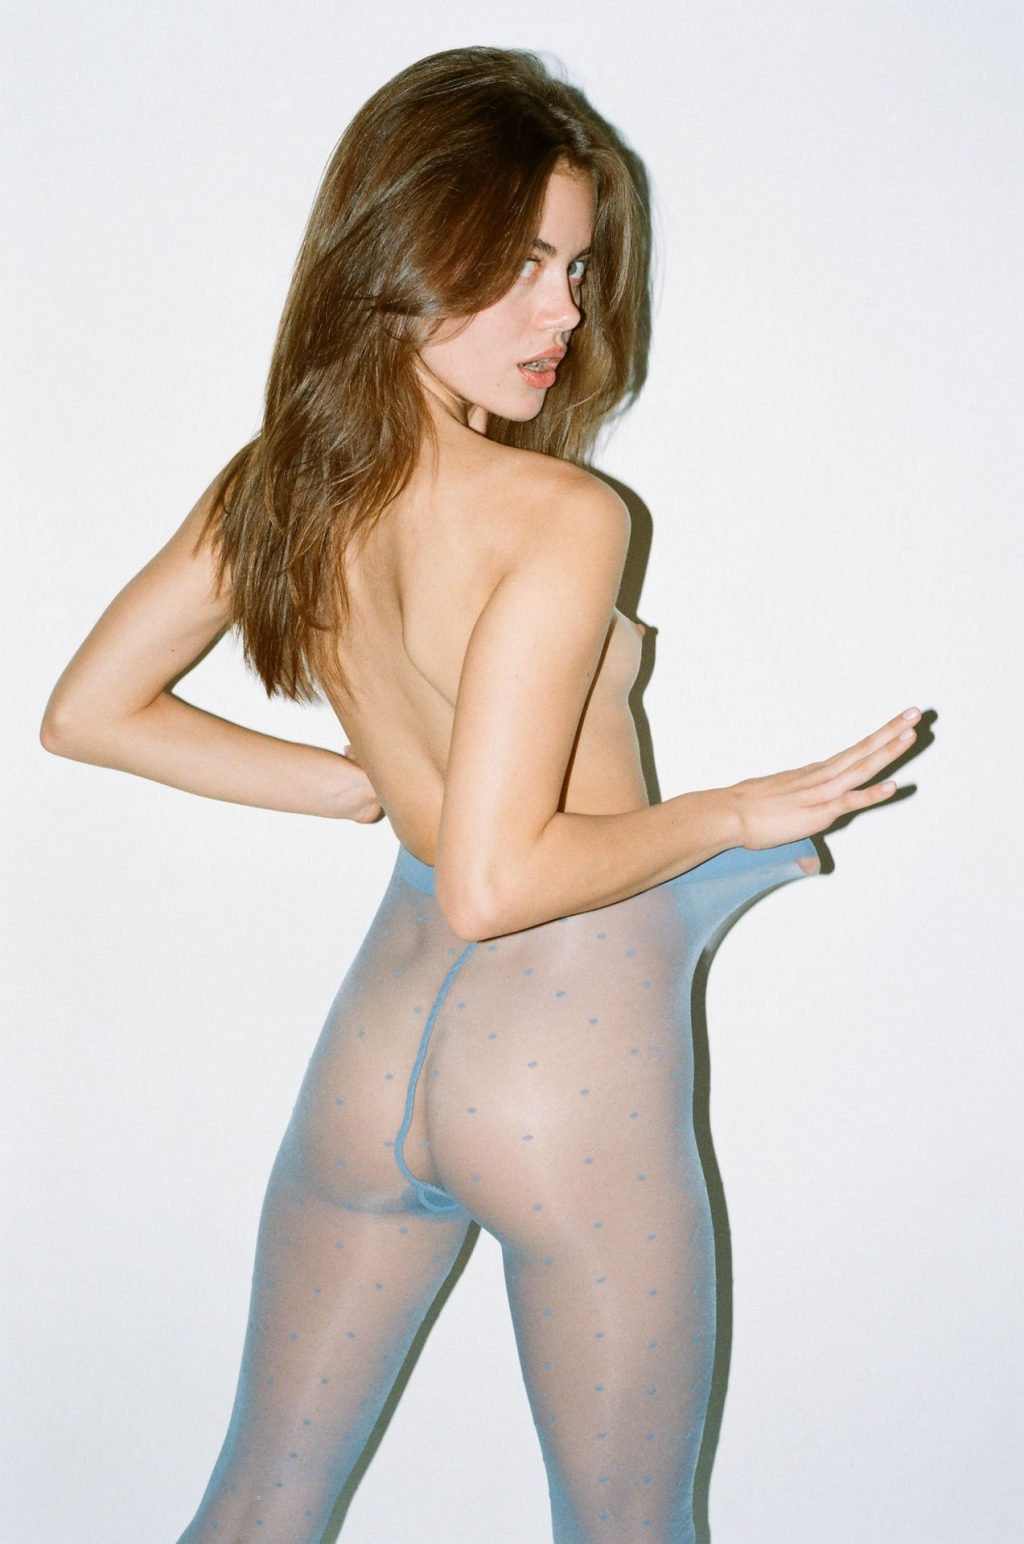 Rachael Lange Poses Nude in Tights (15 Photos)